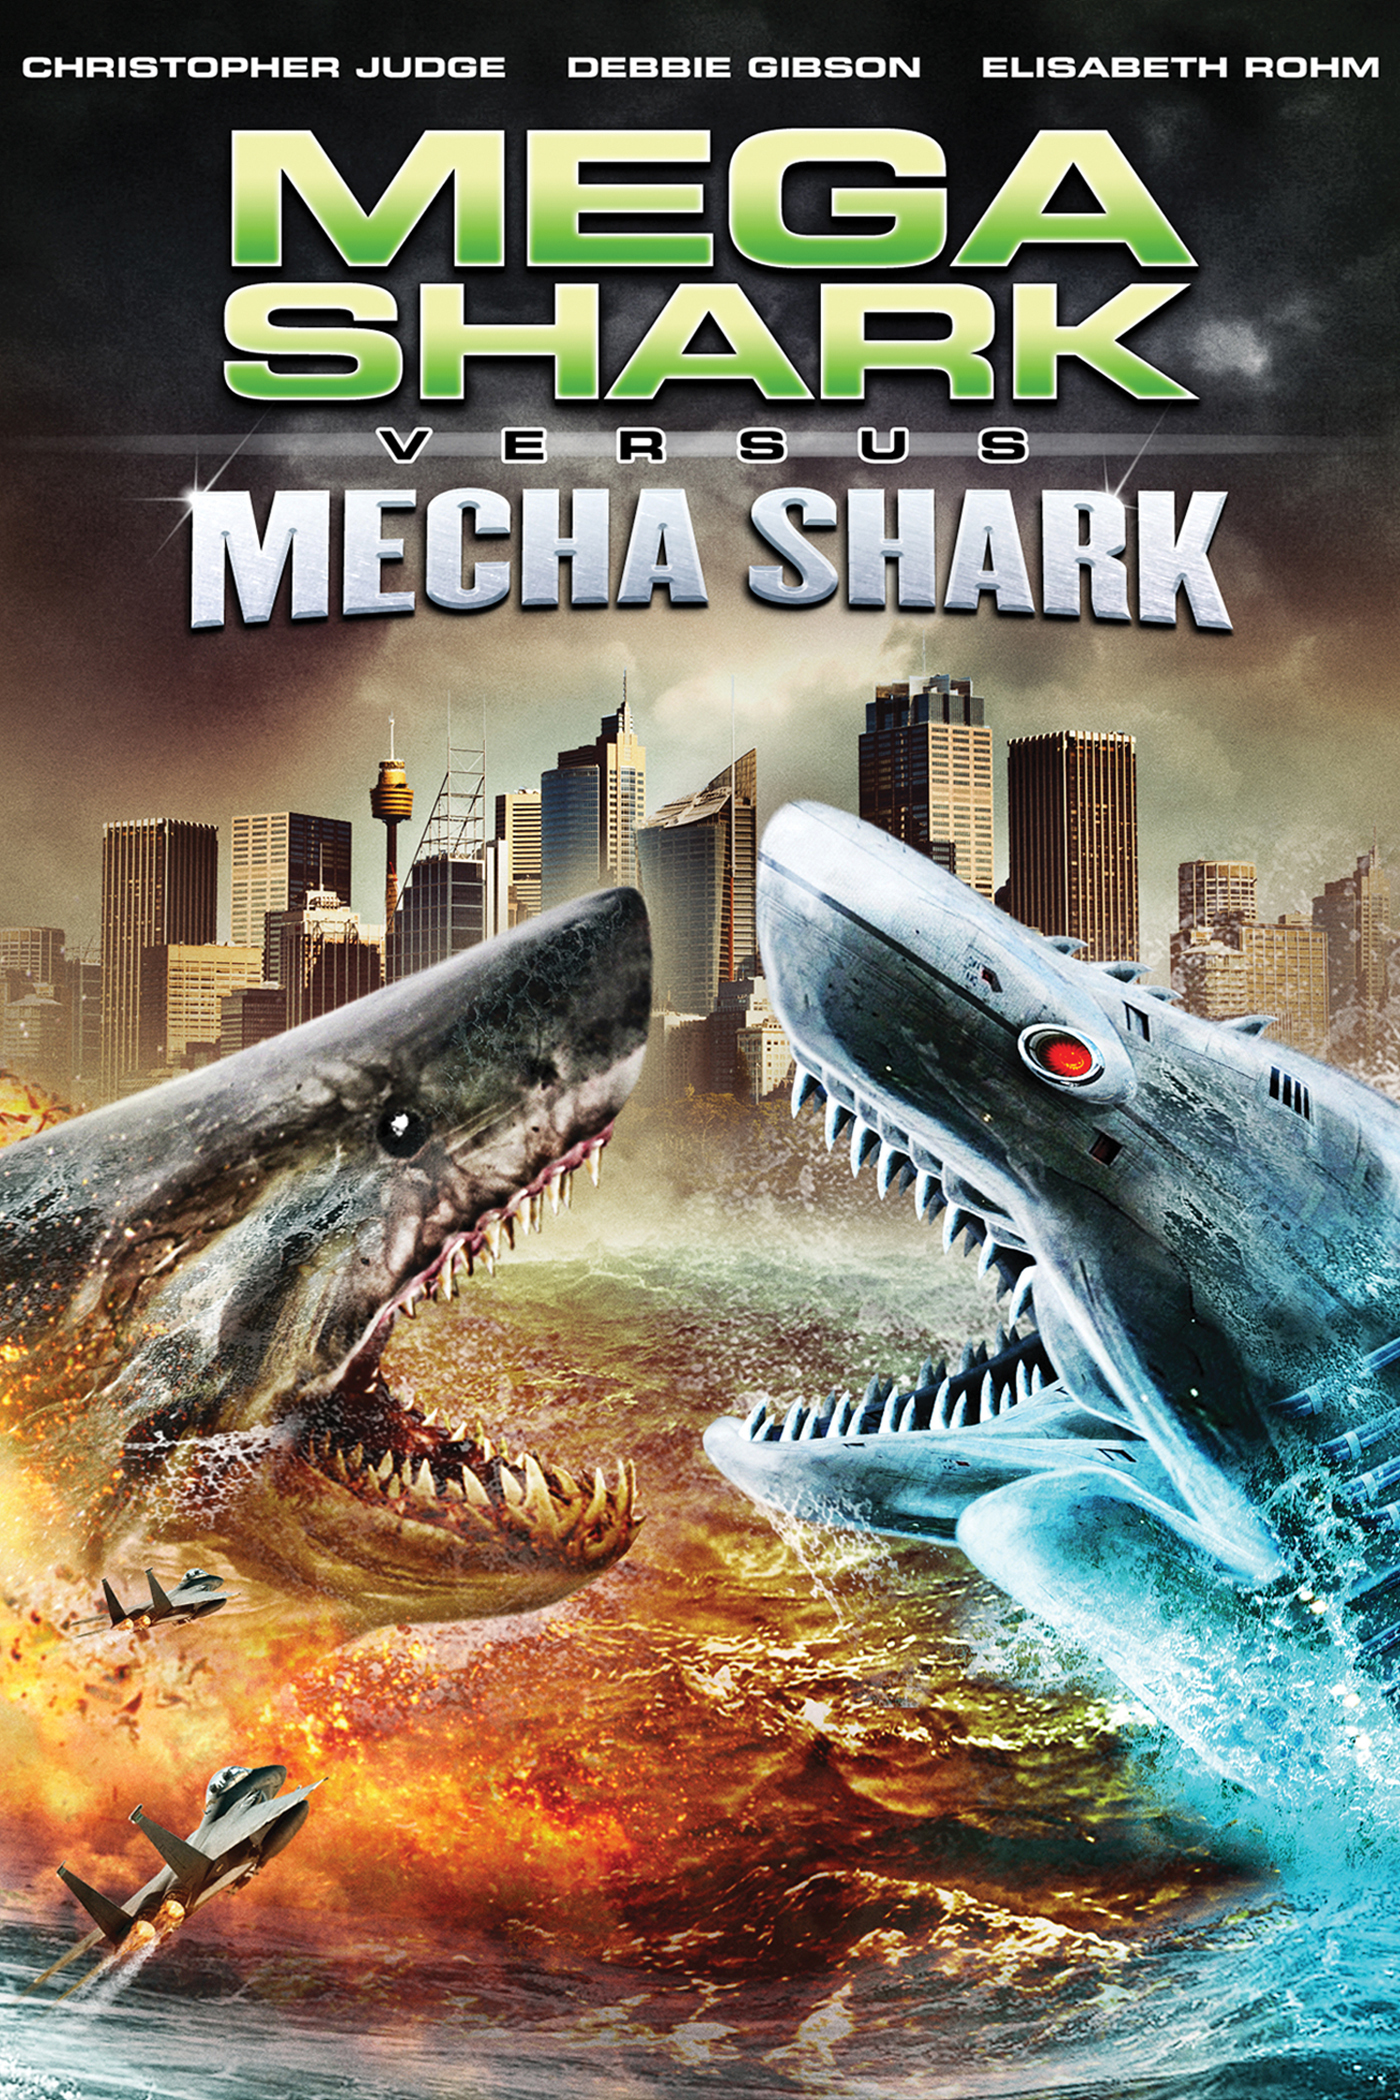 Mega Shark vs Mecha Shark 2014  Creature Feature Corner